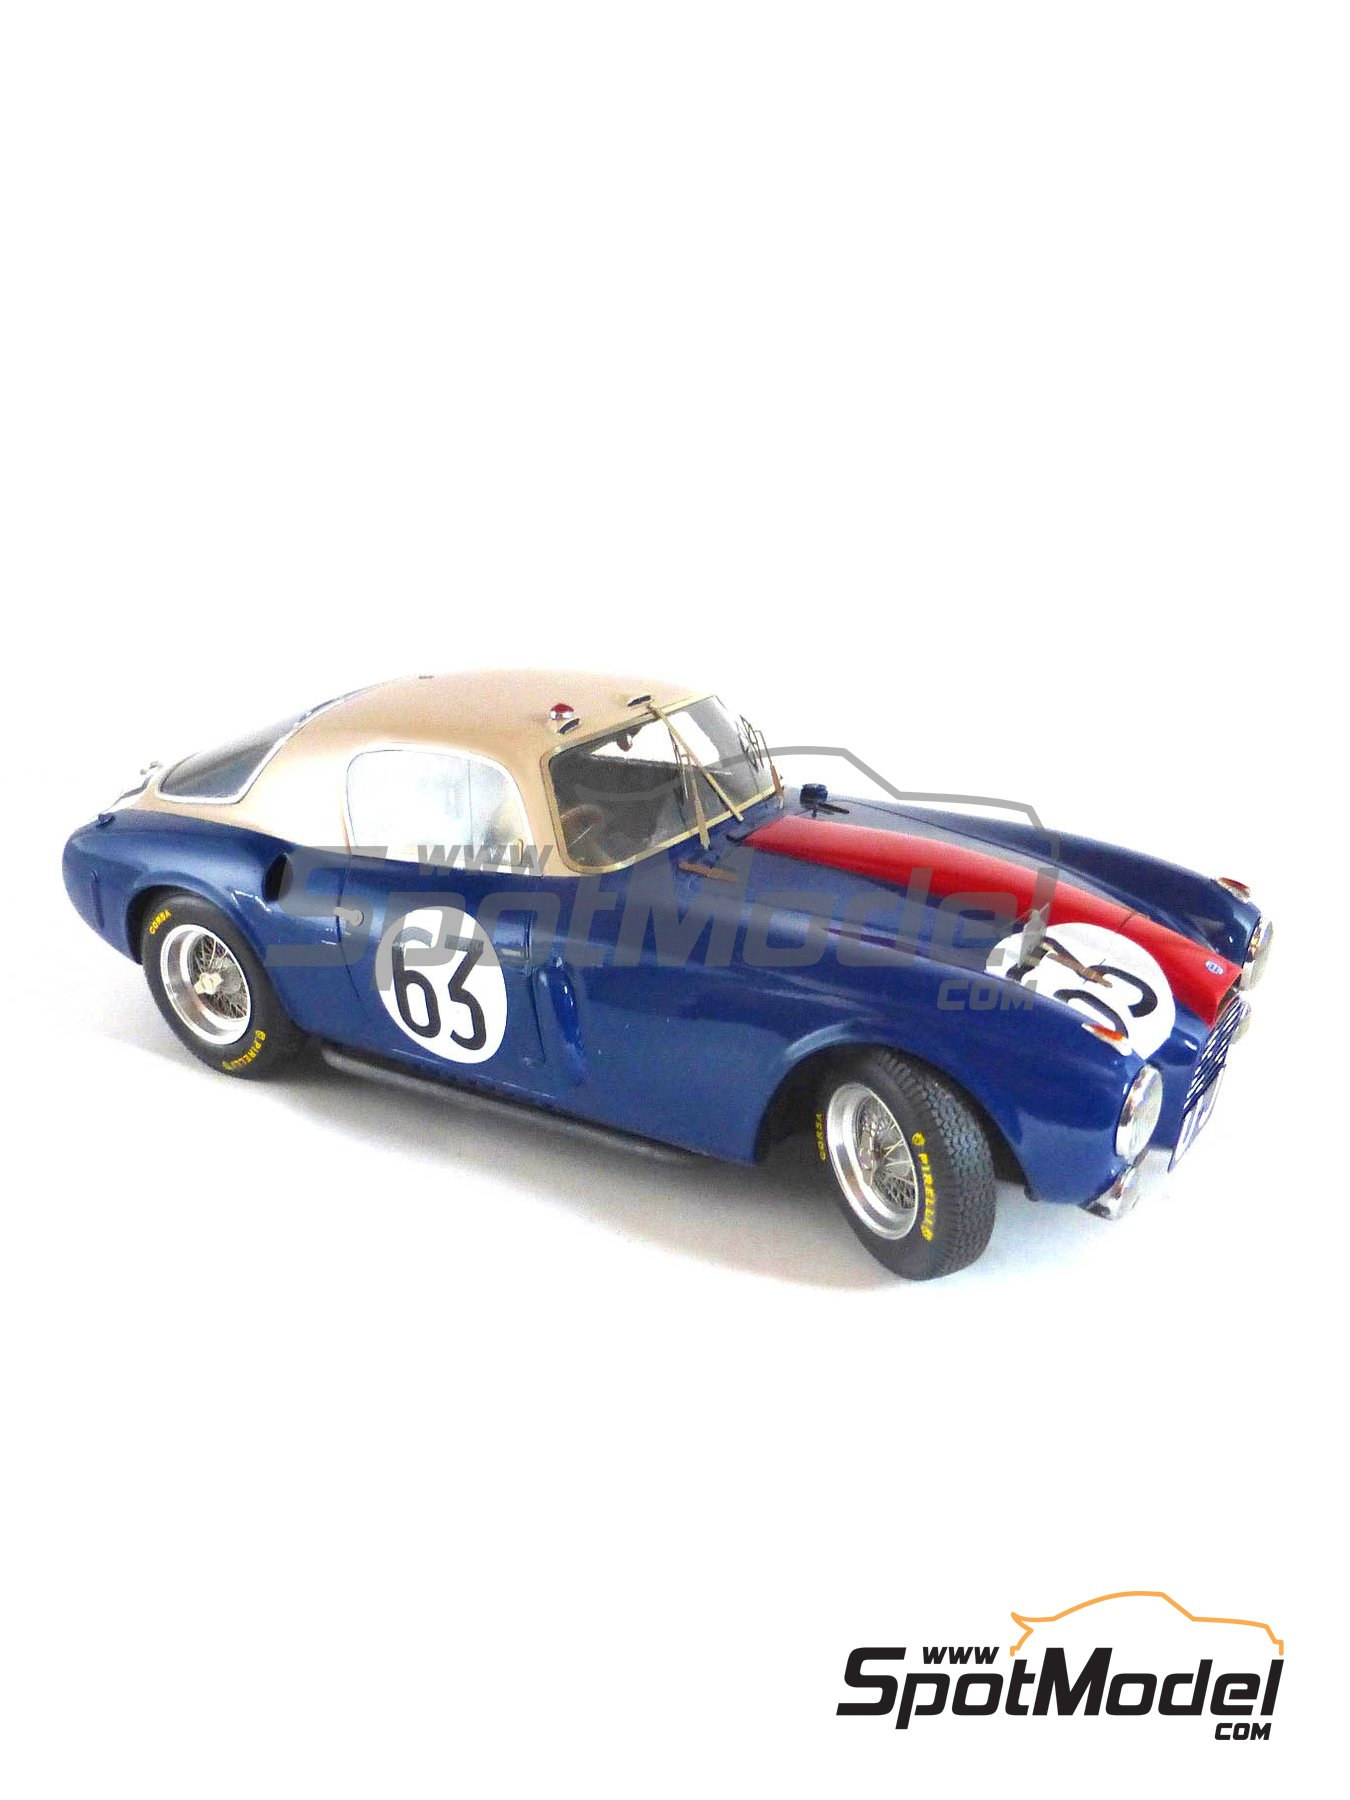 Lancia D20 - 24 Hours Le Mans, Targa Florio 1953 | Model car kit in 1/24 scale manufactured by Profil24 (ref. P24104) image